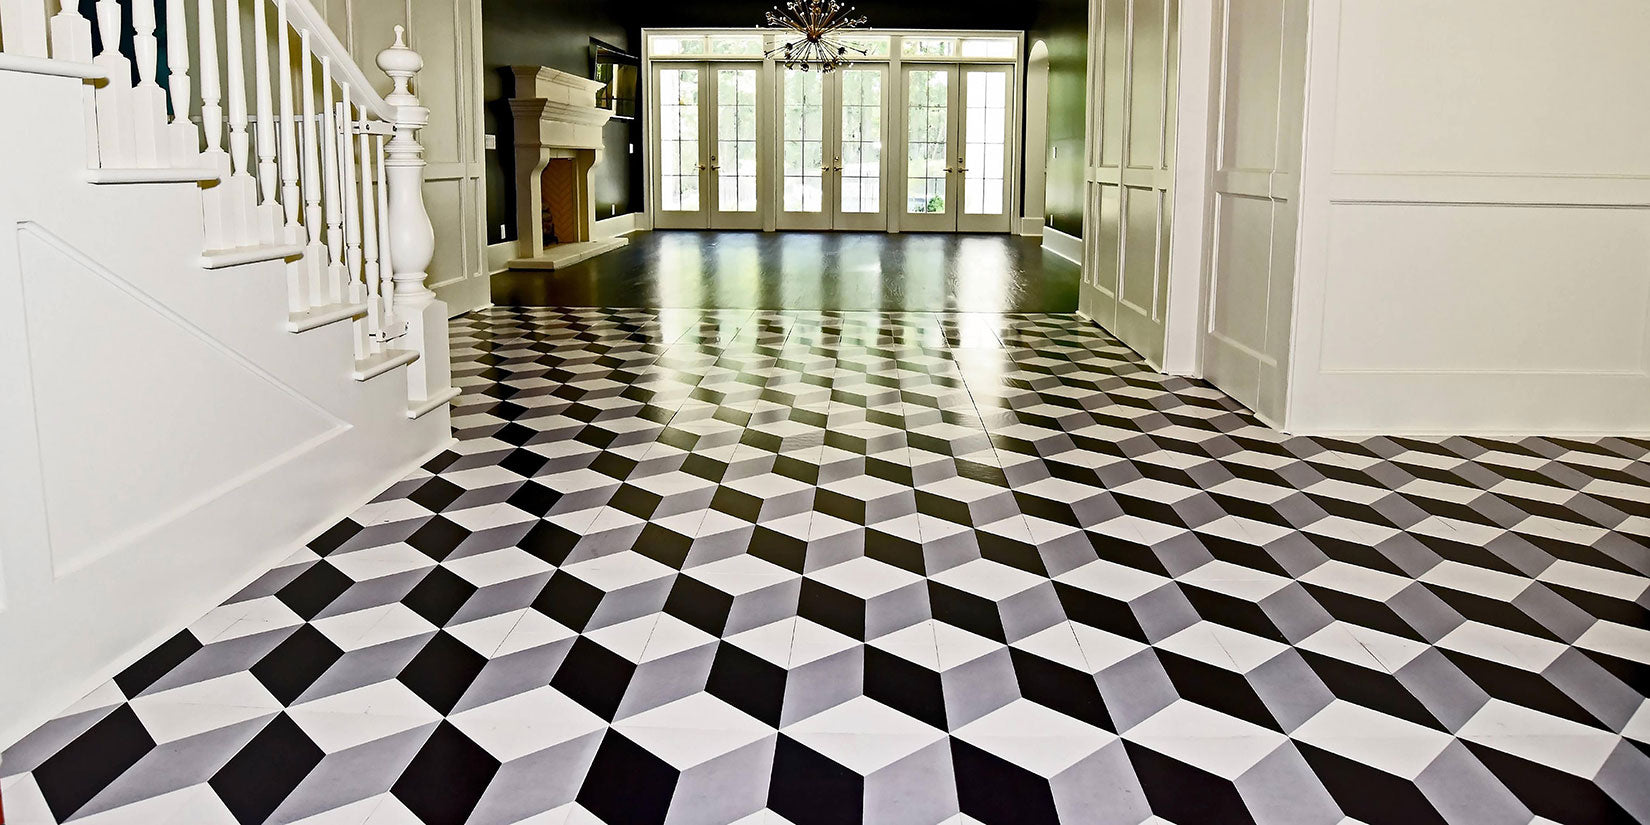 Floor Tile Cleaning - Prevention and Maintenance